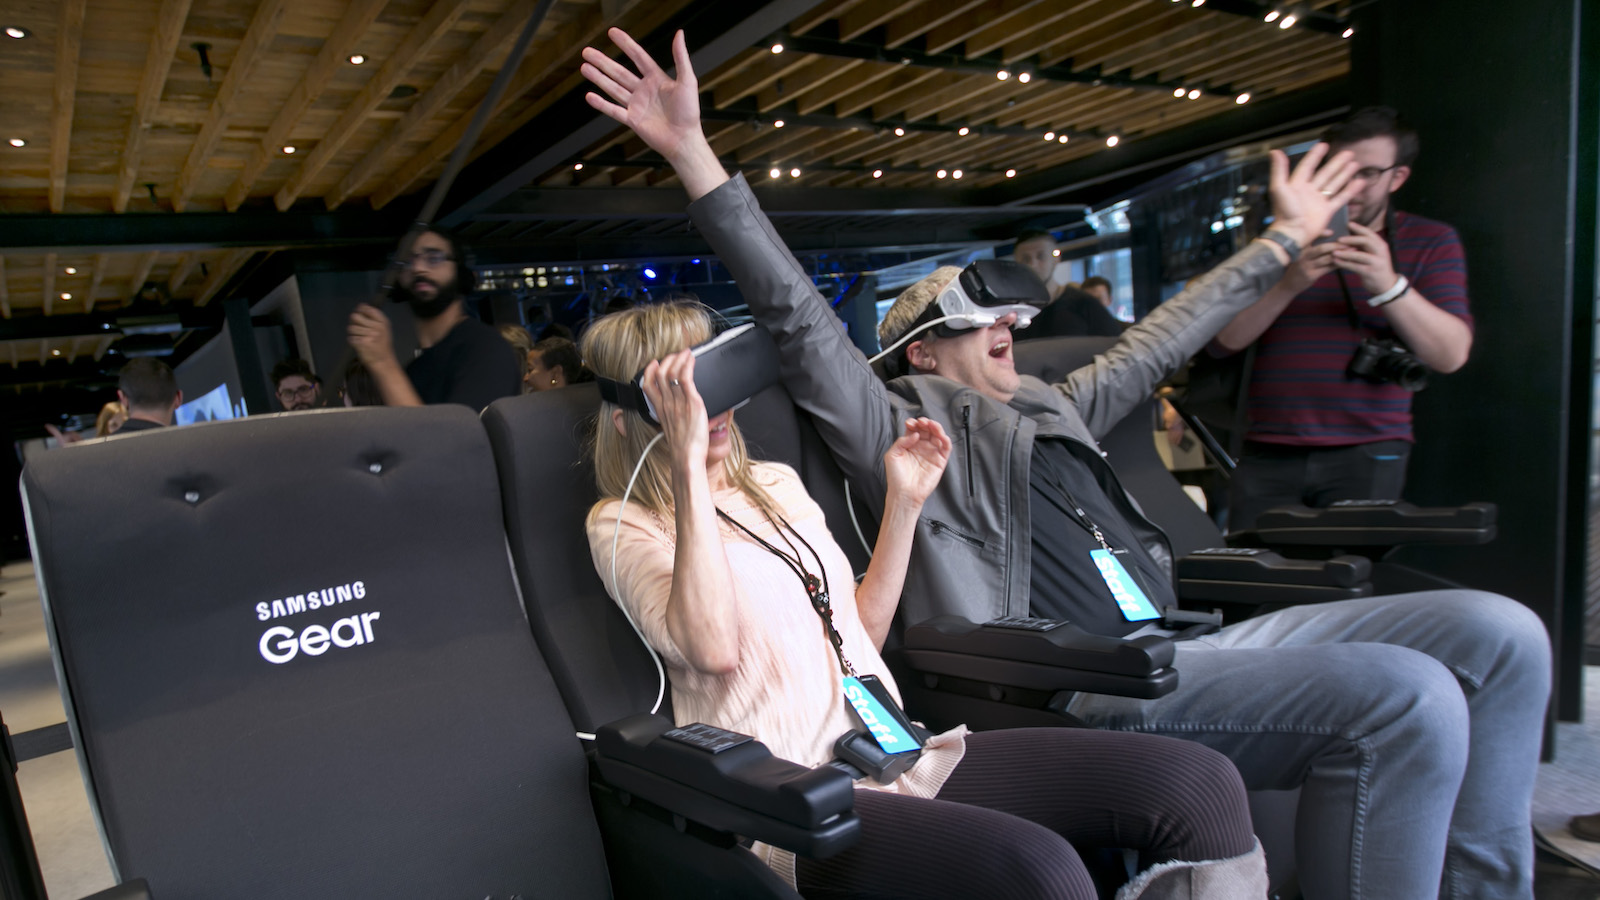 """Samsung Gear VR 4D chairs are demonstrated during a preview of Samsung's flagship store, Samsung 837, in New York's Meatpacking District, Monday, Feb 22, 2016. Samsung is opening what it calls a """"technology playground"""" in New York for customers to check out its latest gadgets. The center opens Tuesday, the day Samsung starts taking orders for its upcoming Galaxy S7 and S7 Edge phones. (AP Photo/Richard Drew)"""